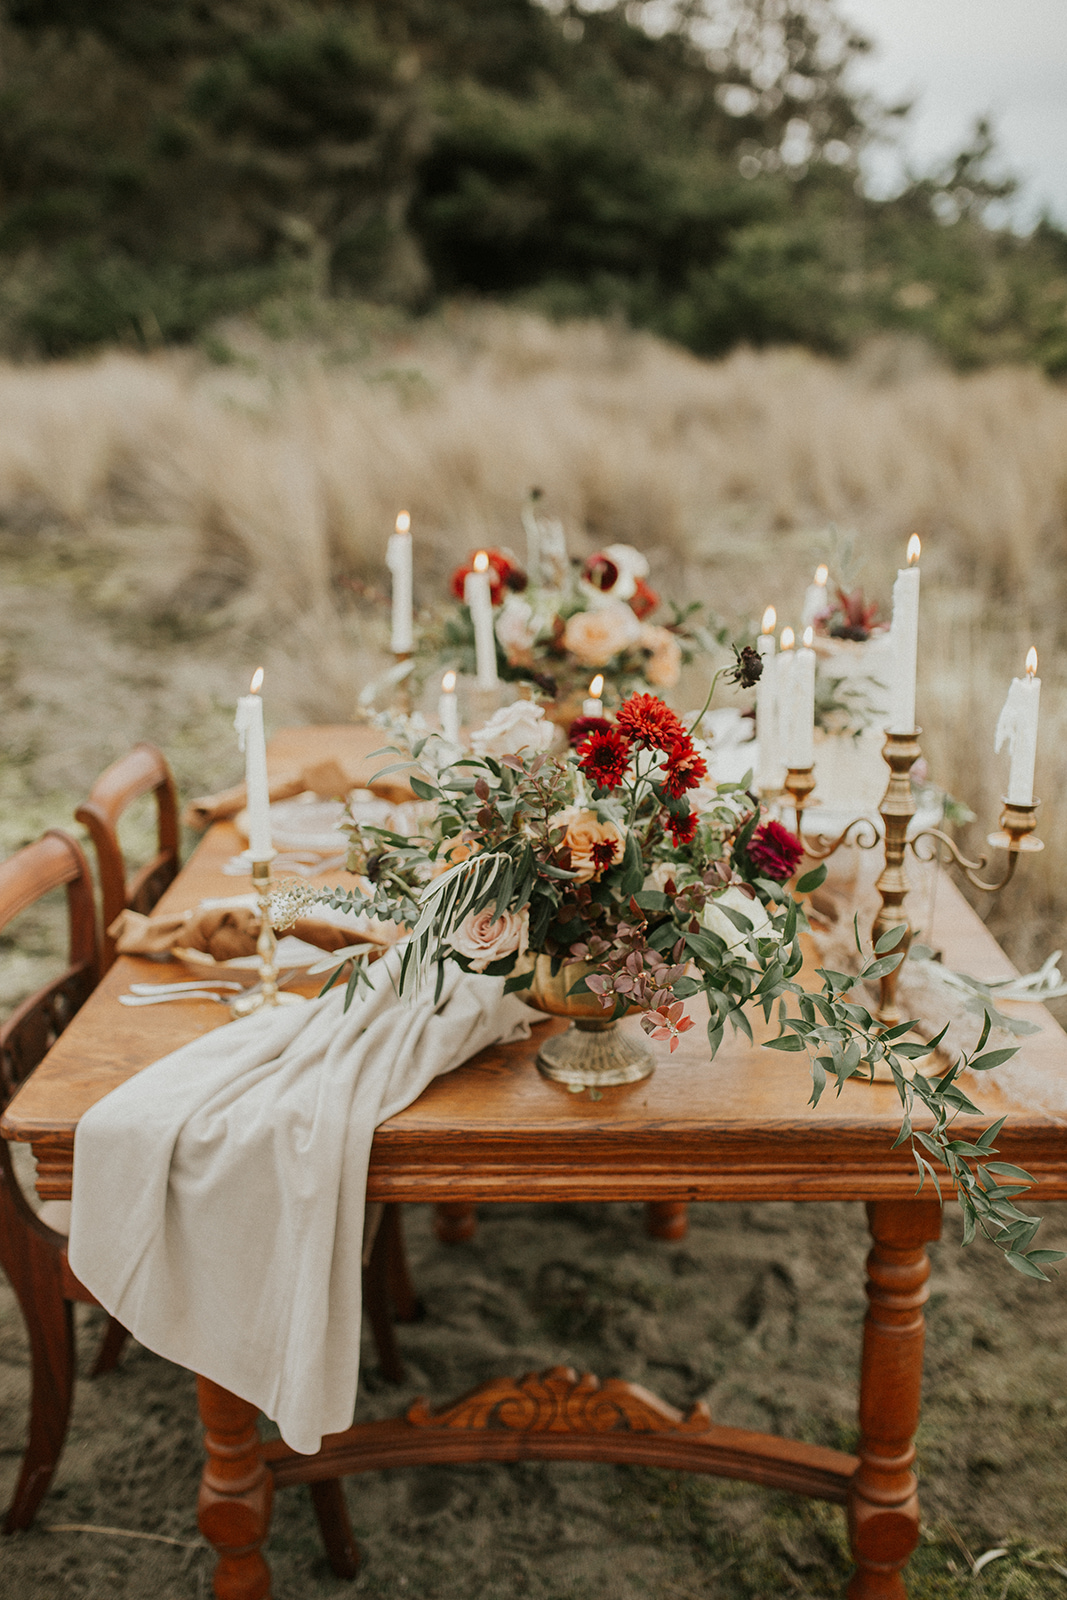 Deception point state park styled shoot -80.jpg